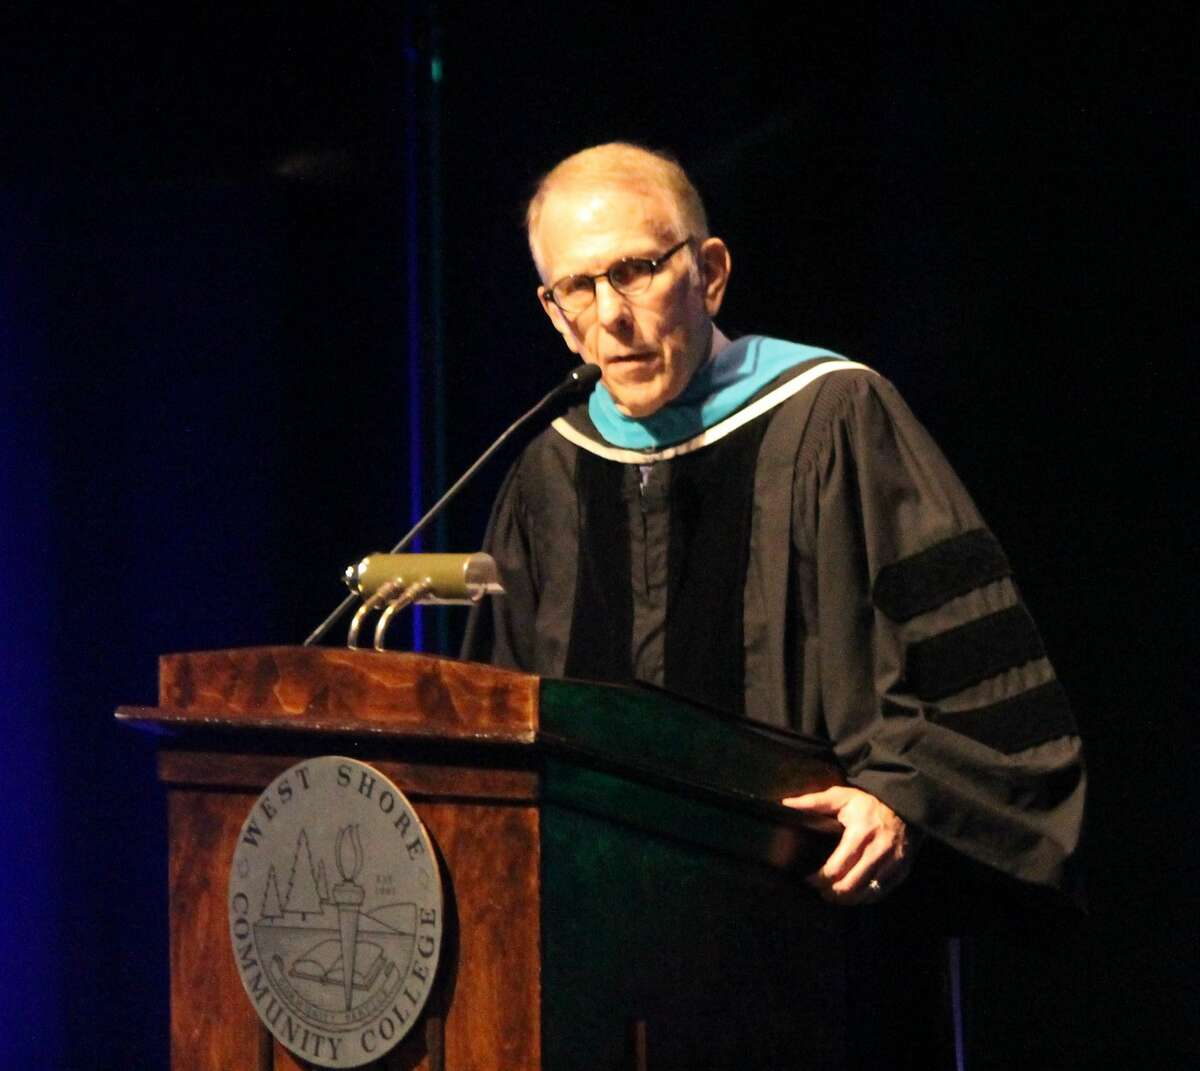 West Shore Community College executive director of college relations Thom Hawley speaks during a commencement ceremony at the Center Stage Theater on April 29. Hawley recently retired after over 19 years with the college.